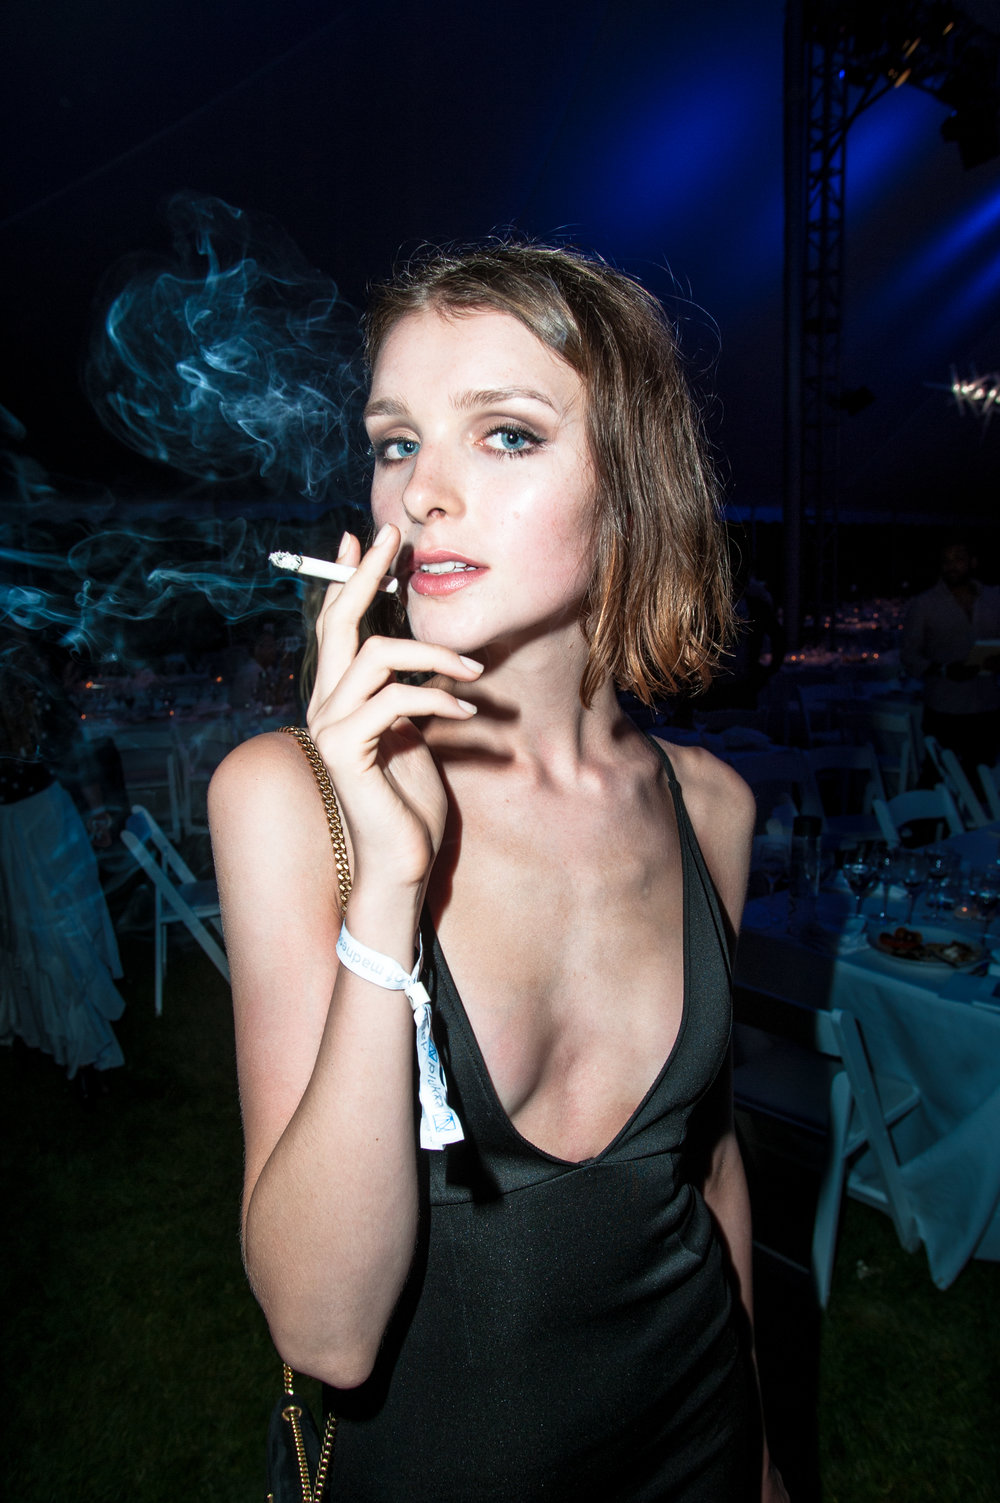 girl_smoking-1-of-1_29158324891_o.jpg